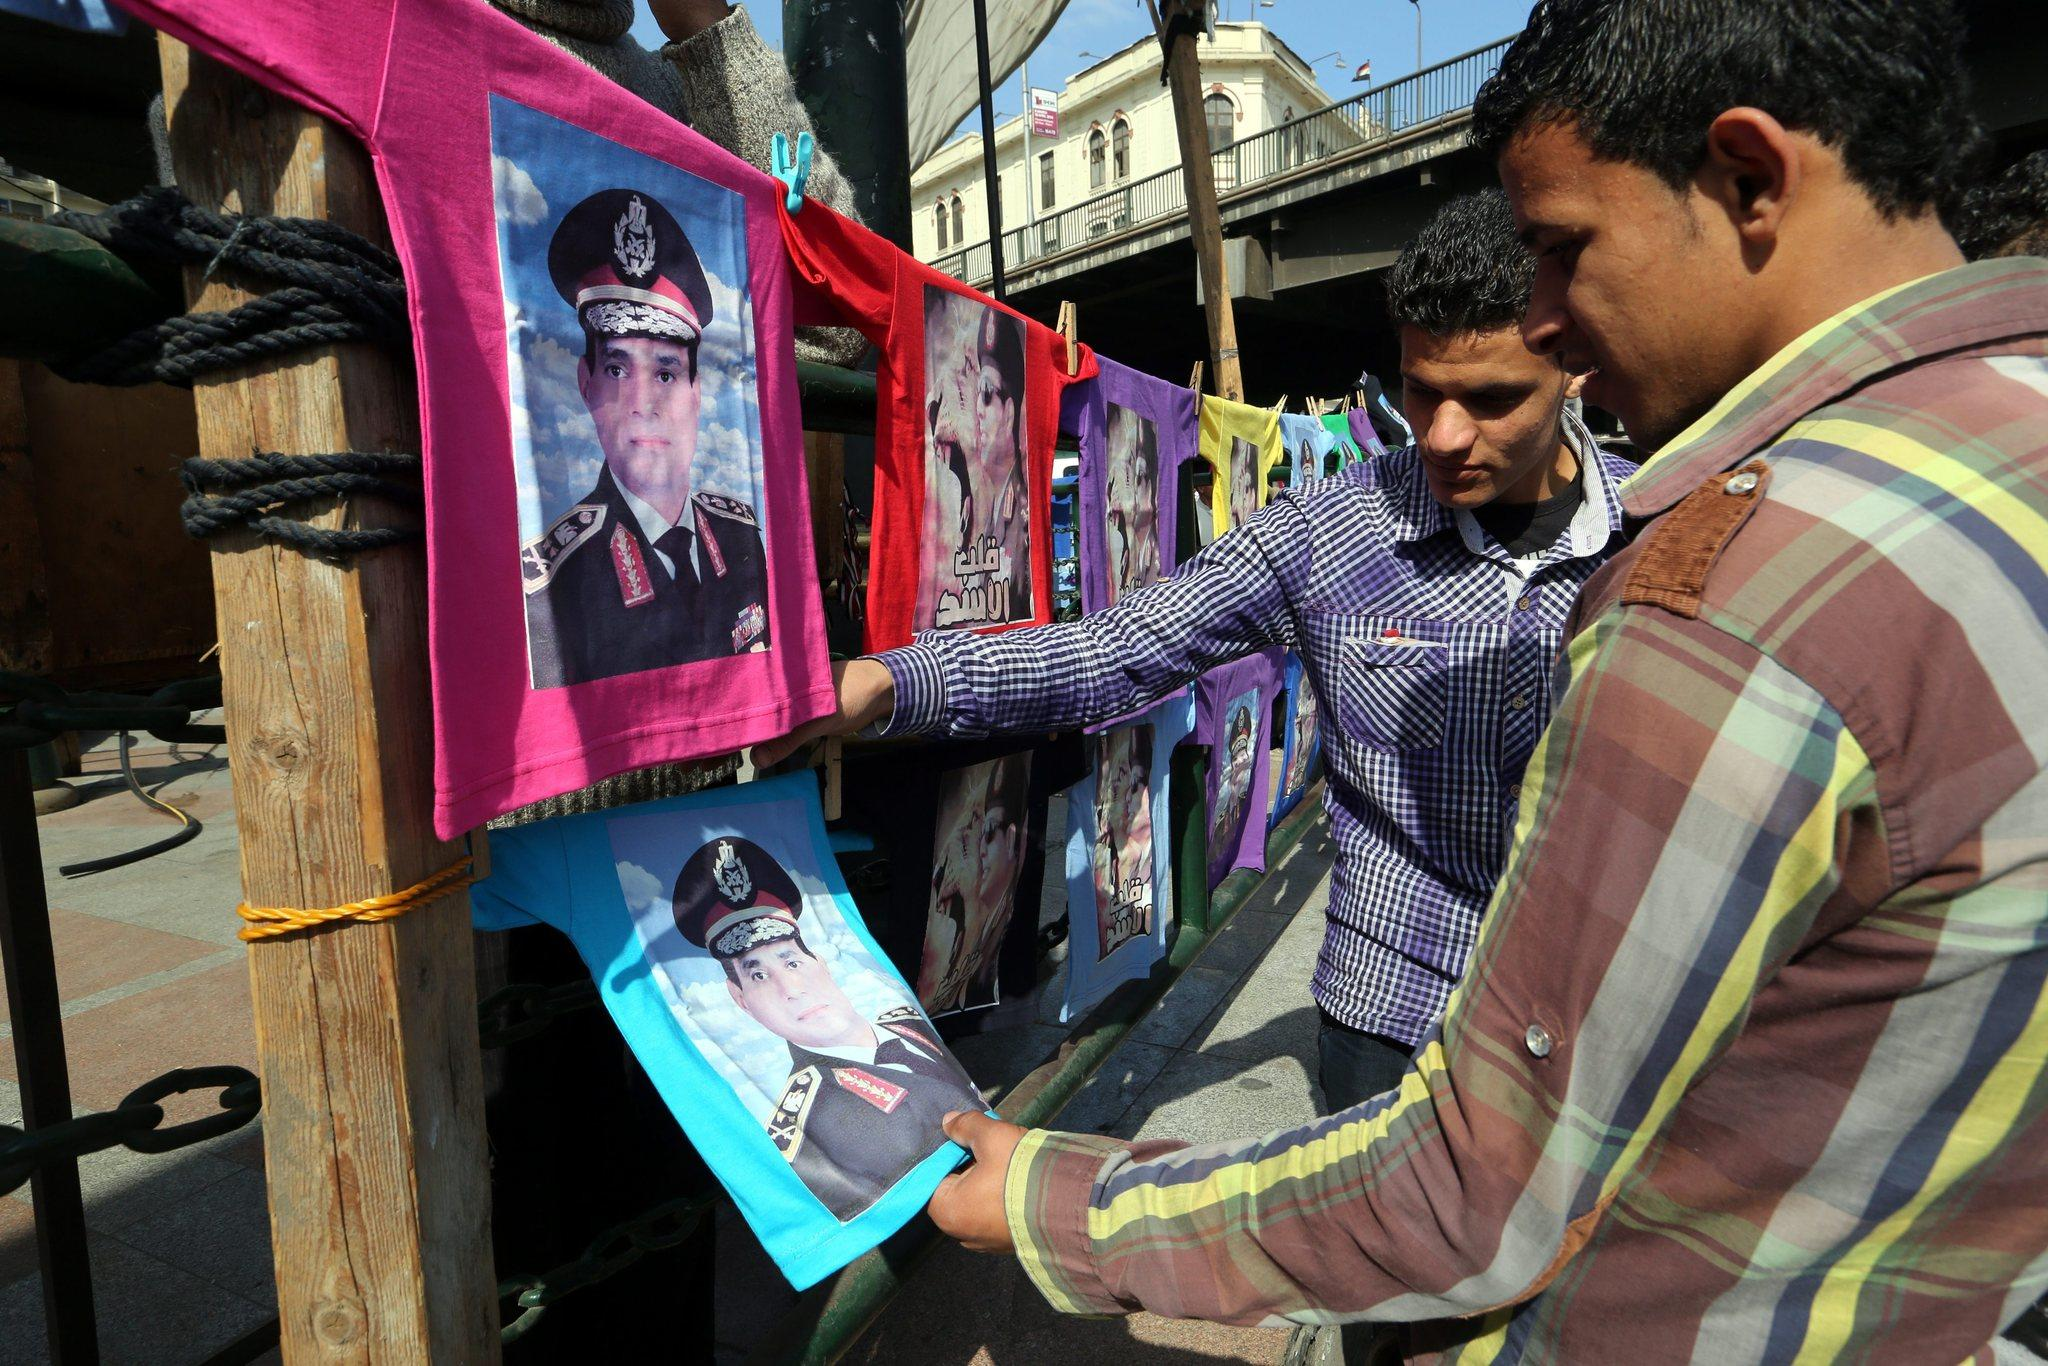 Egyptian officials announced that the first round of the country's presidential election, which former Field Marshal Abdel Fattah Sisi is widely expected to win, will be held May 26 and 27. Above, T-shirts displaying photos of Sisi are offered for sale in Cairo.